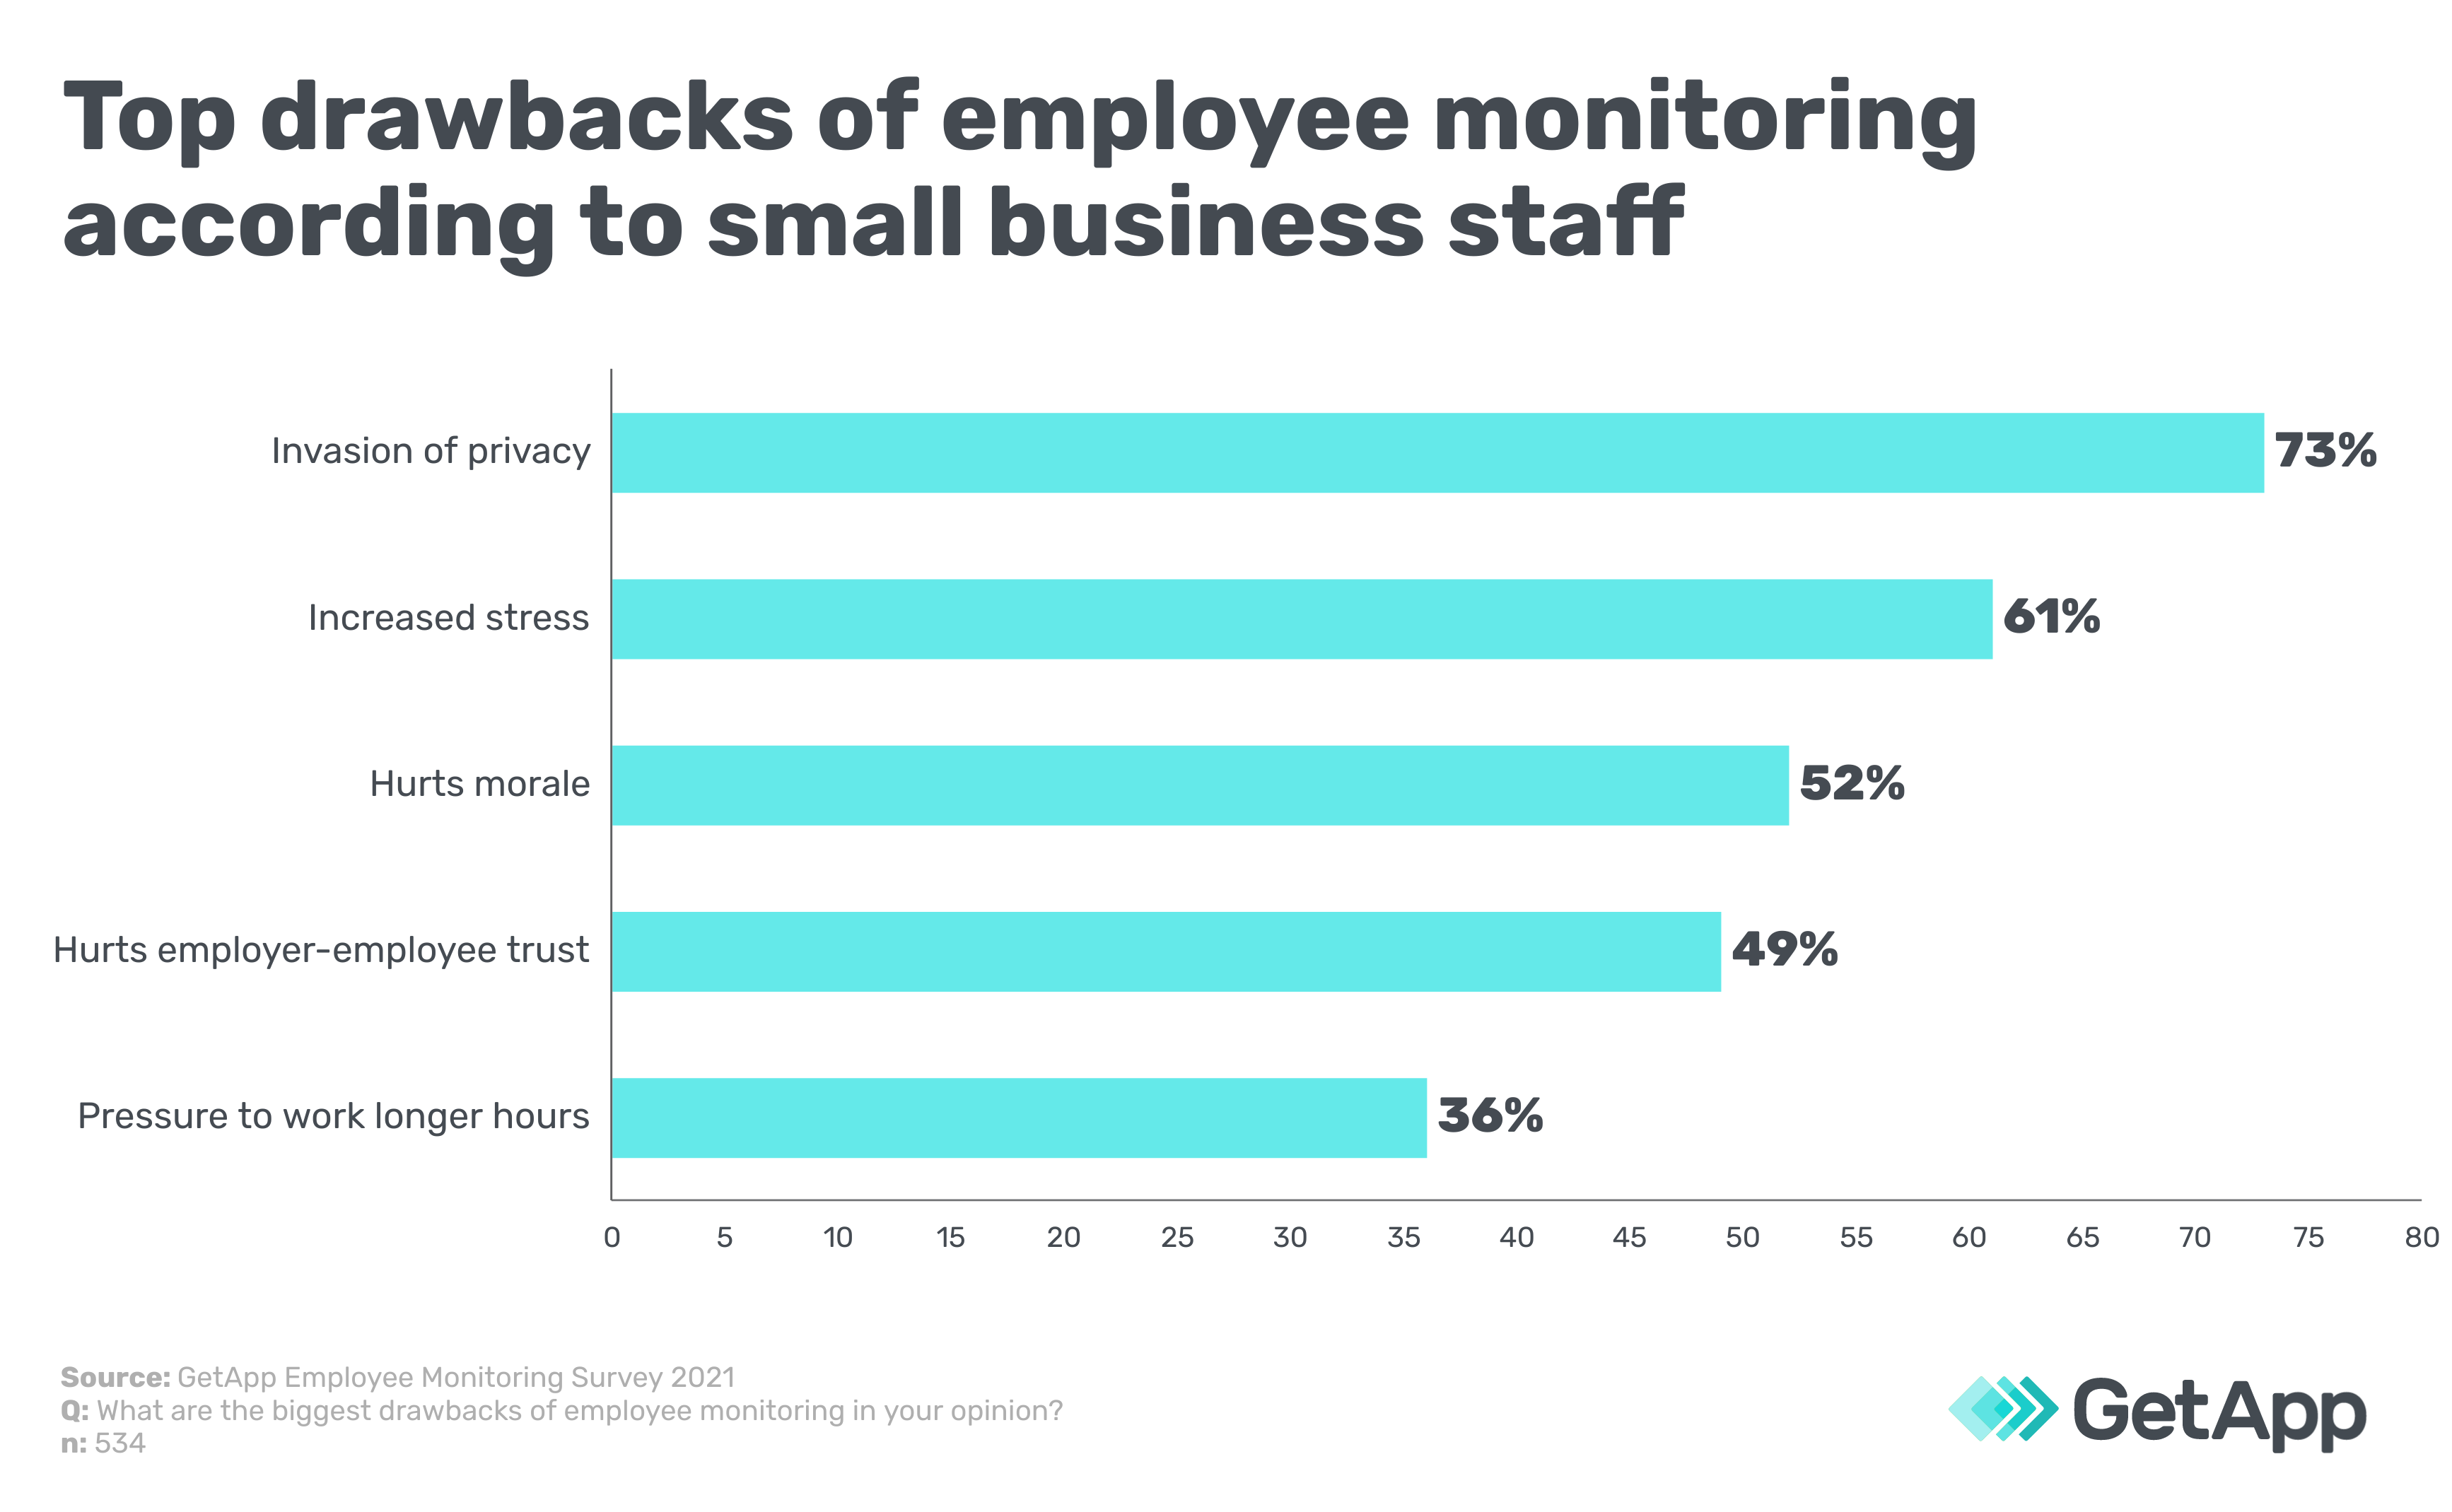 Top drawbacks of employee monitoring according to small business staff